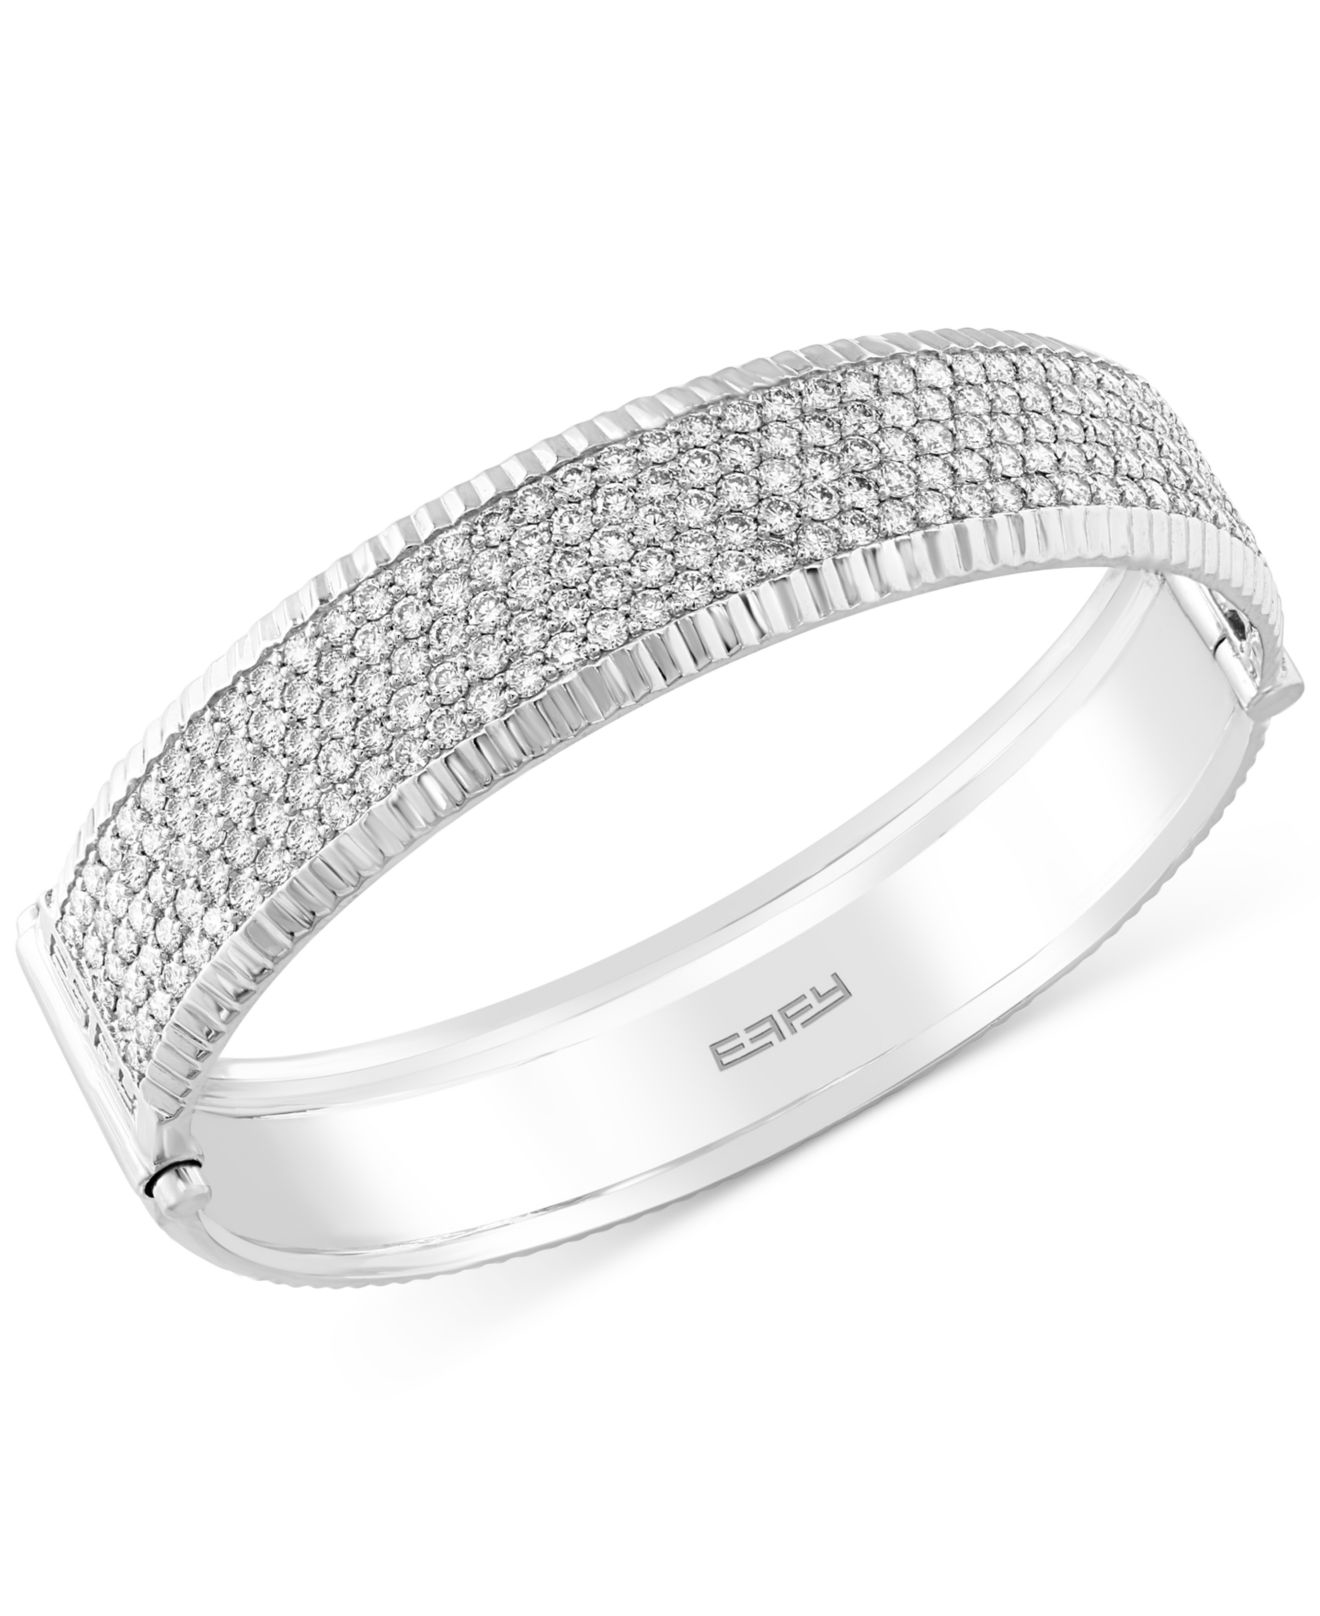 coin bangle diamond jewelers single bracelet product square rose d roberto white pave gold amore products bangles